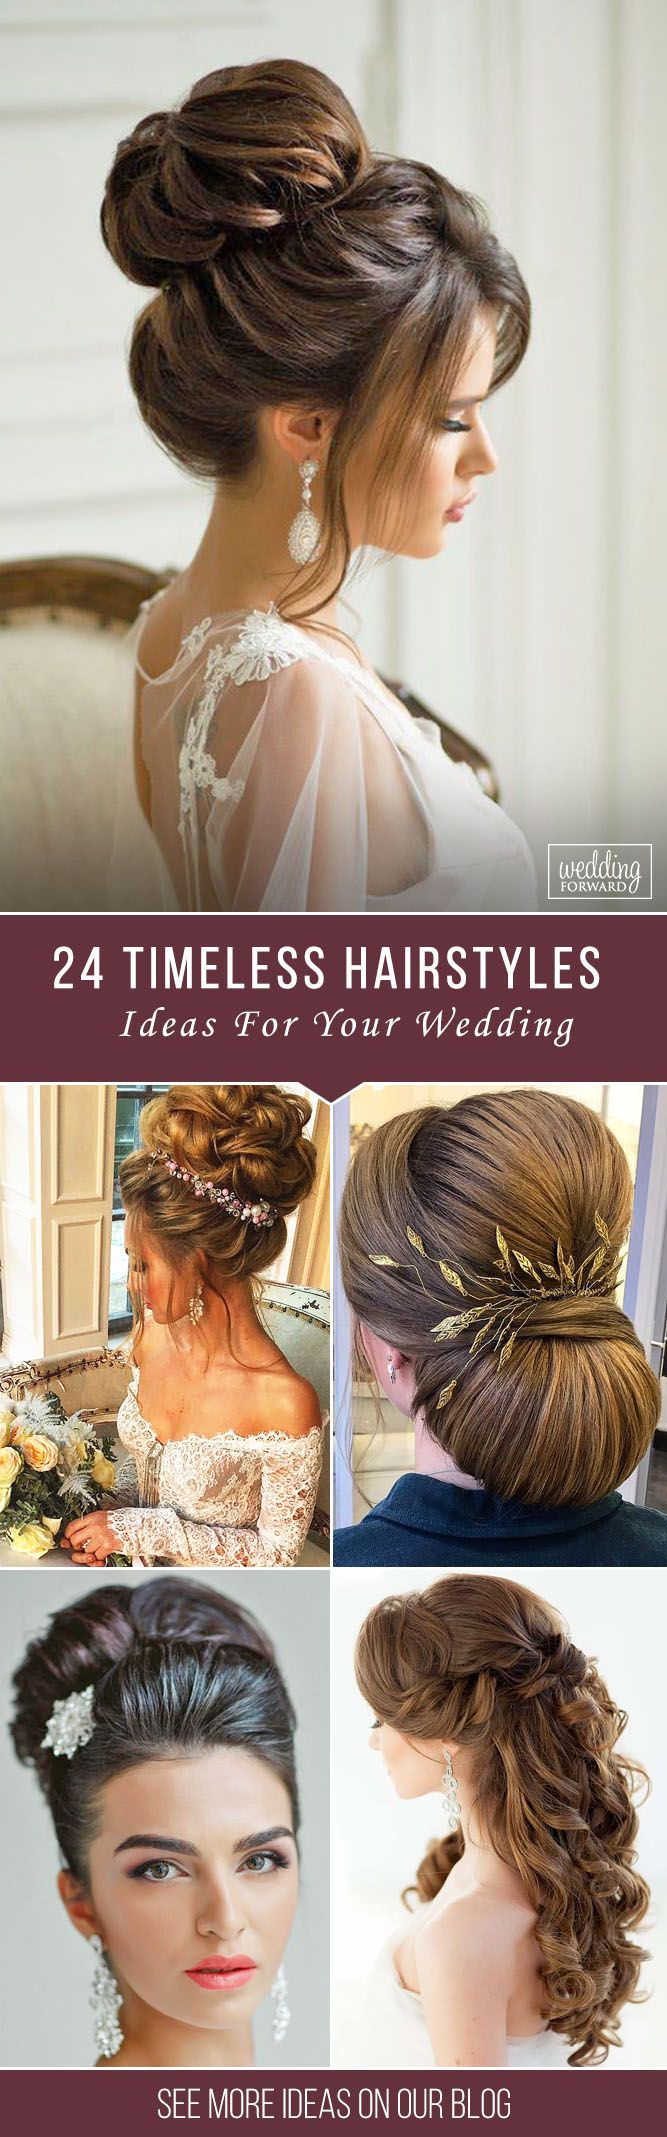 24 Timeless Bridal Hairstyles ❤ If you're still looking for a great hairstyl...